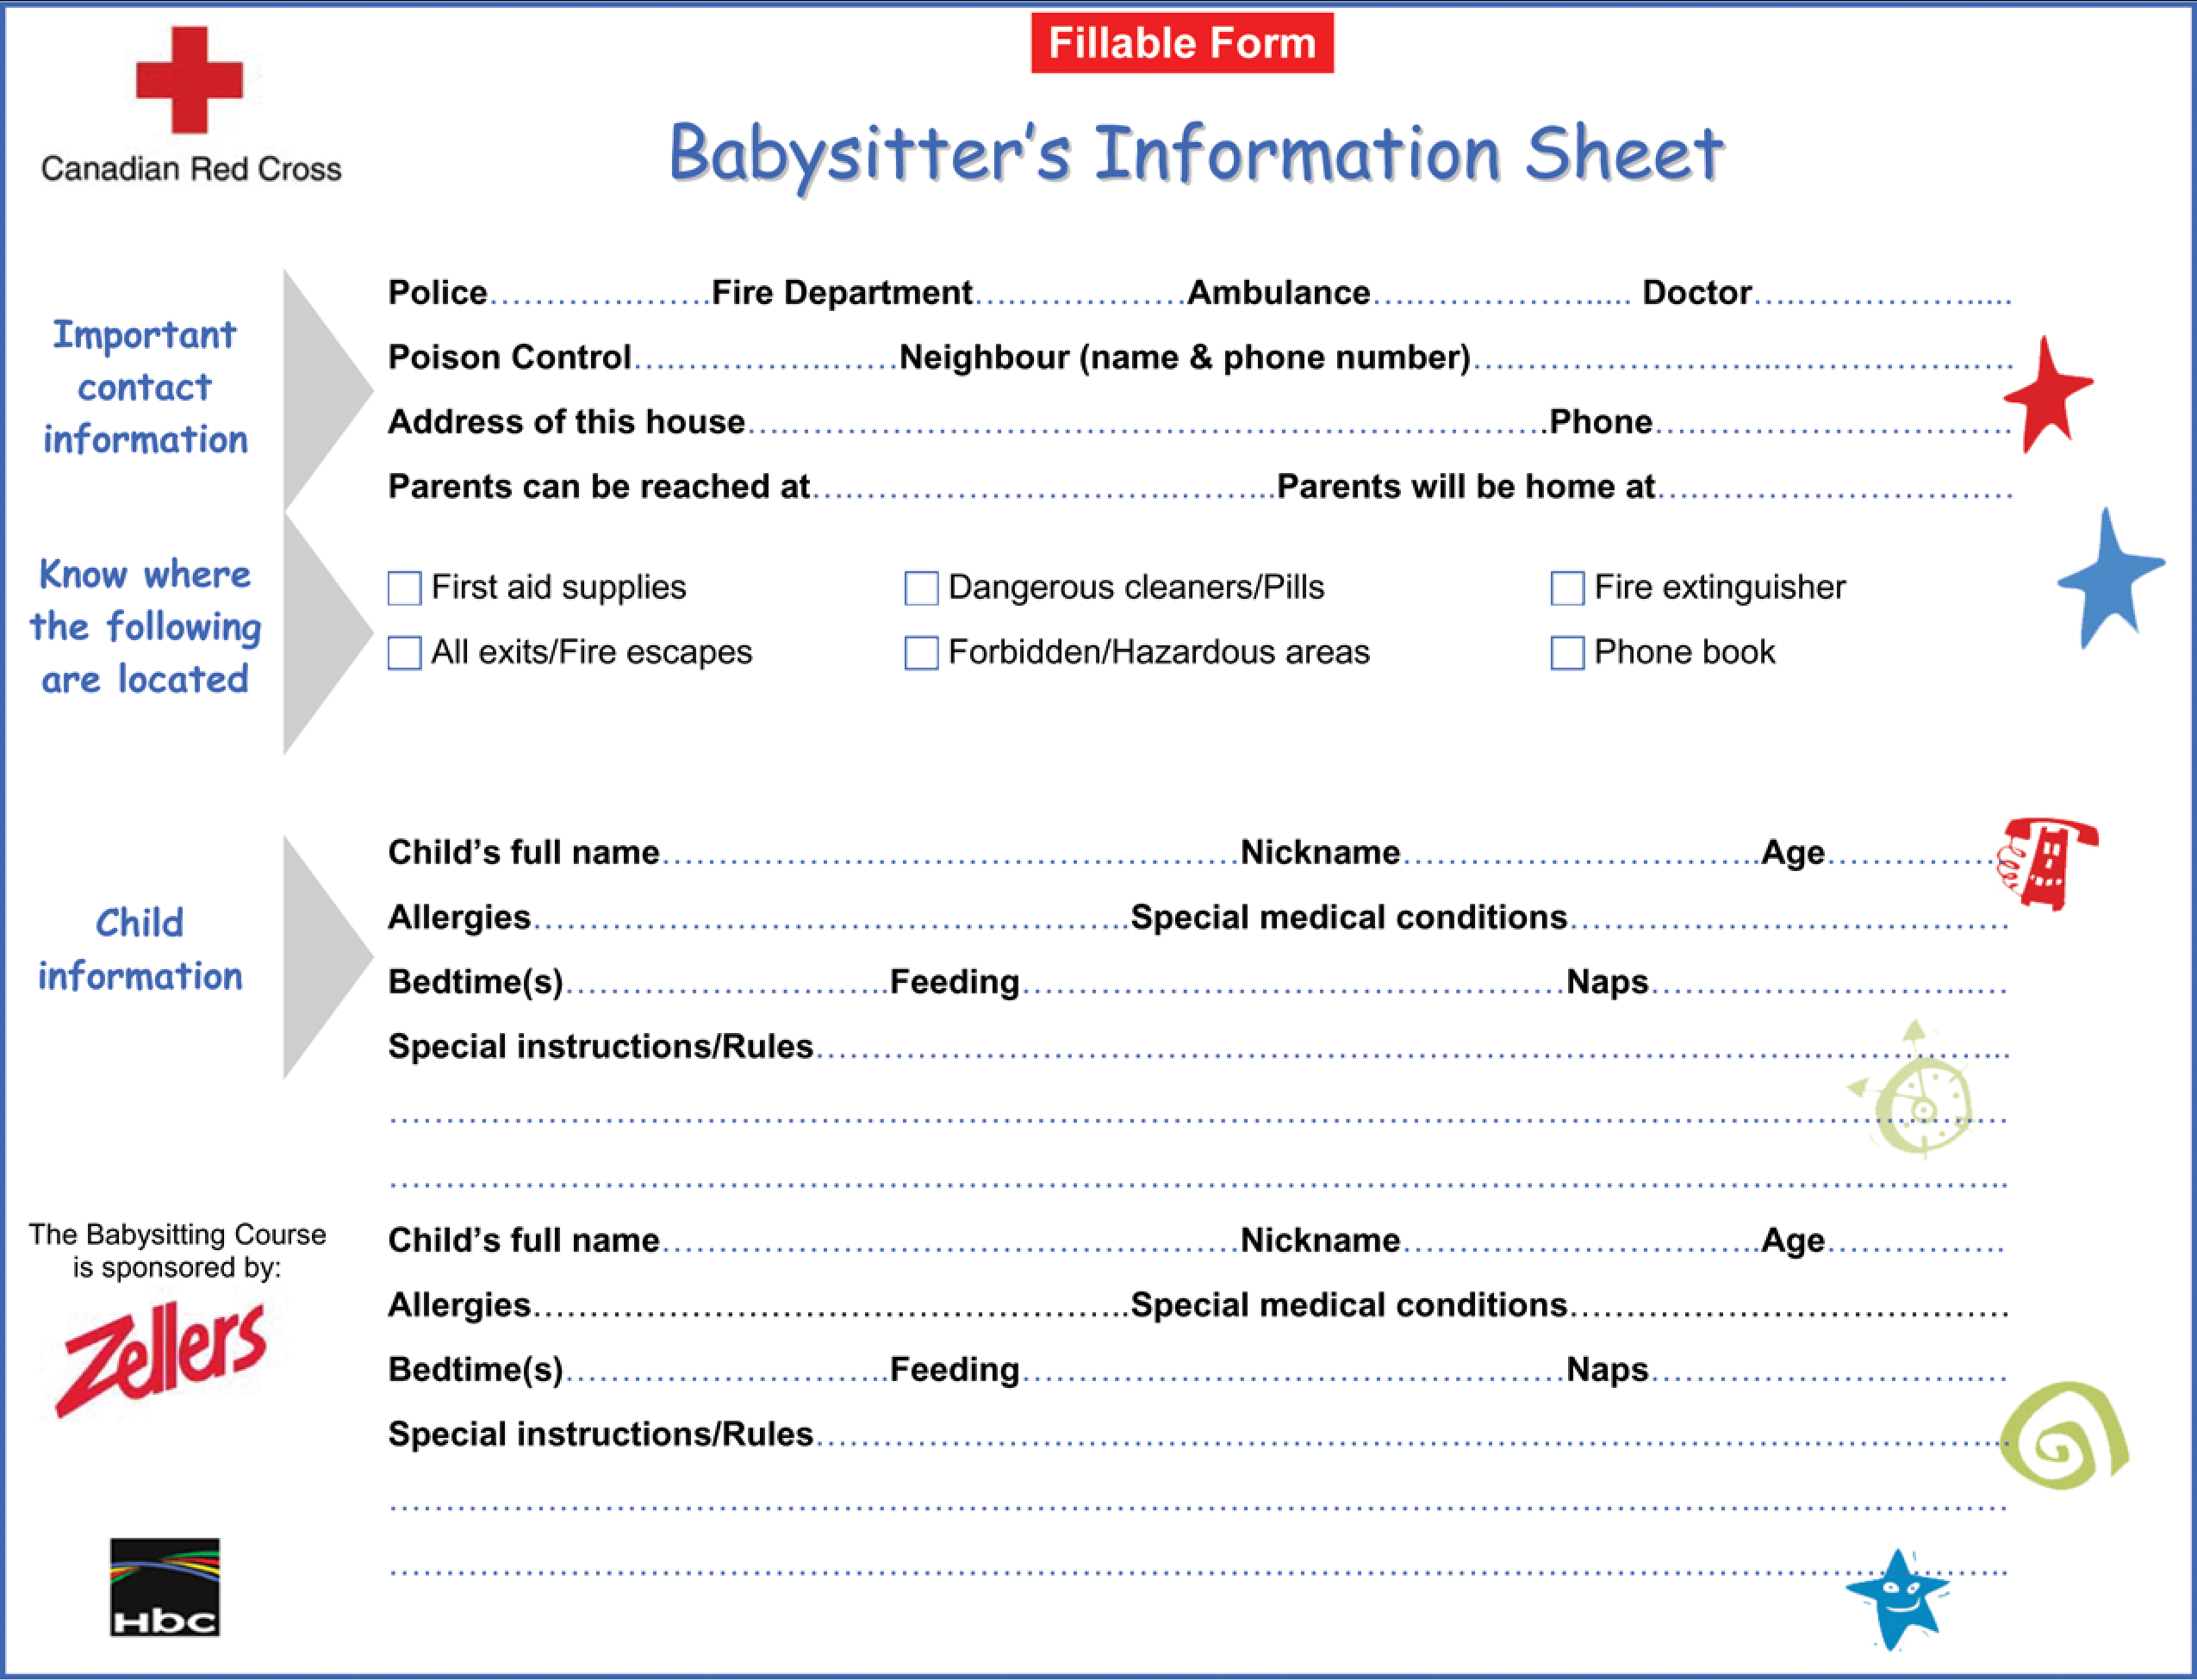 Free Printable Babysitter Information Sheet | Templates At - Free Printable Customer Information Sheets